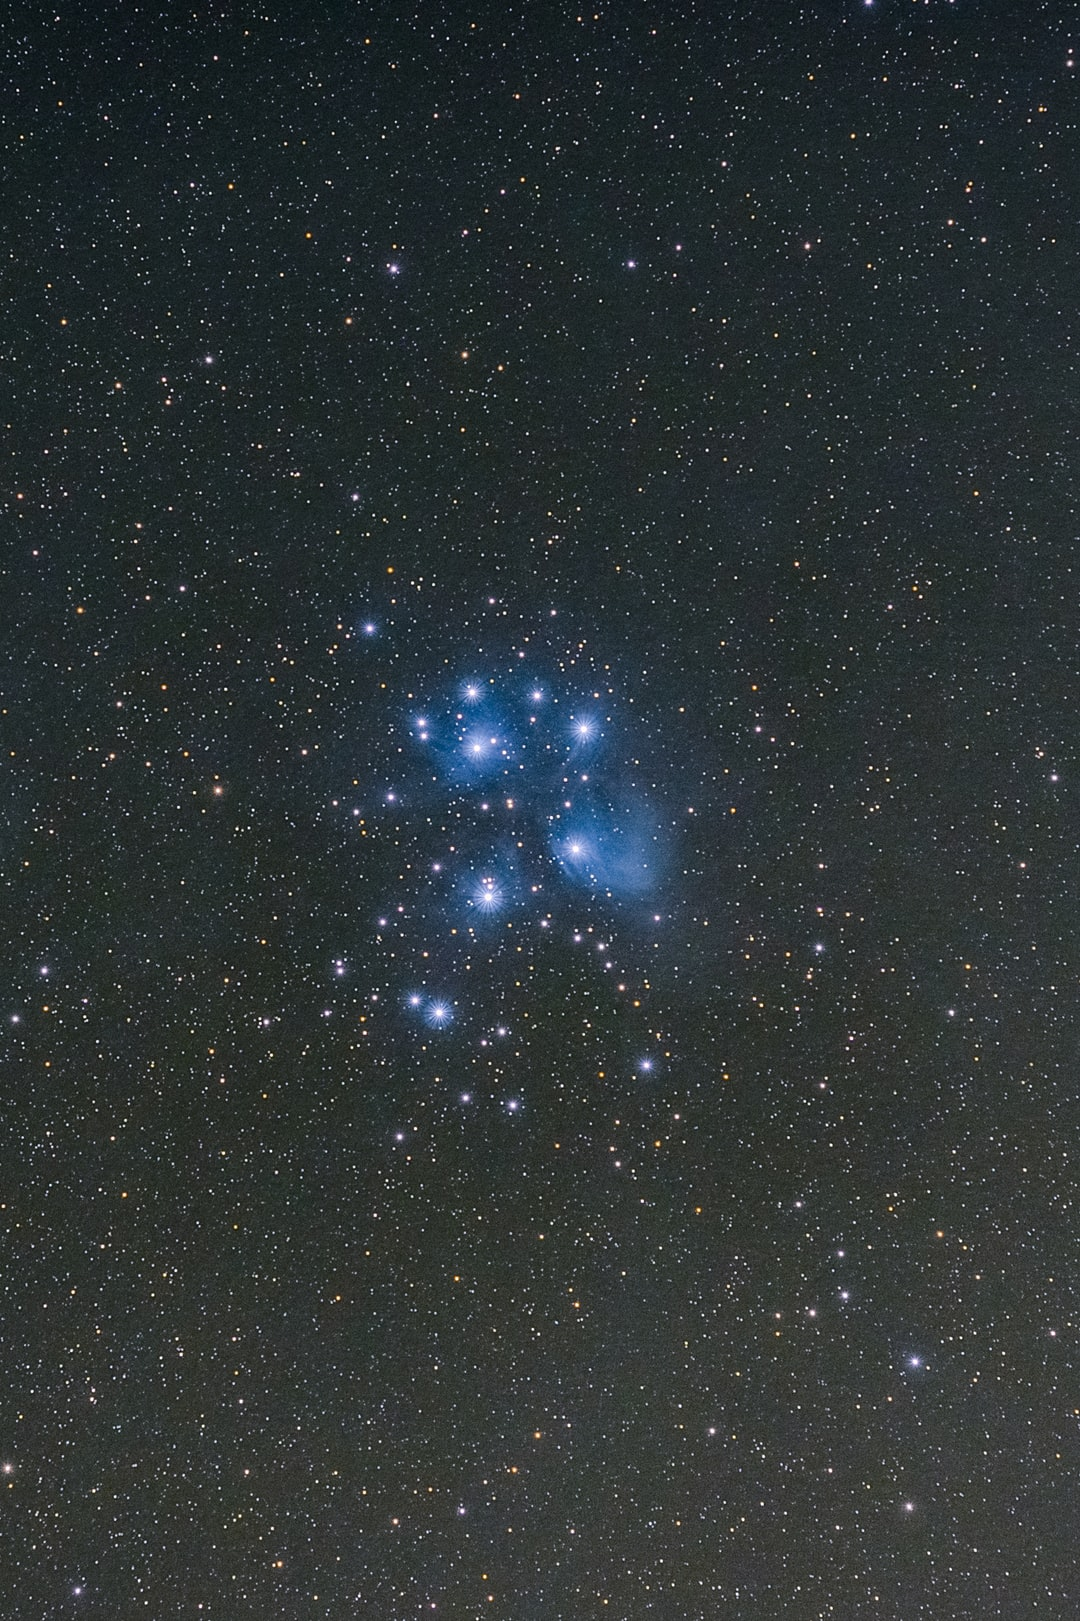 I took this photo last night in my backyard in Petaluma, California. It is a picture of the Seven Sisters or Pleiades or M45. They are blue in color due to the extreme heat of the stars. This always a fun sky object to photograph. Most of you probably didn't even know it looked this way, but it does! Get out this winter and look up in the sky! I'm on IG @bryangoffphoto Stop by and say hi!